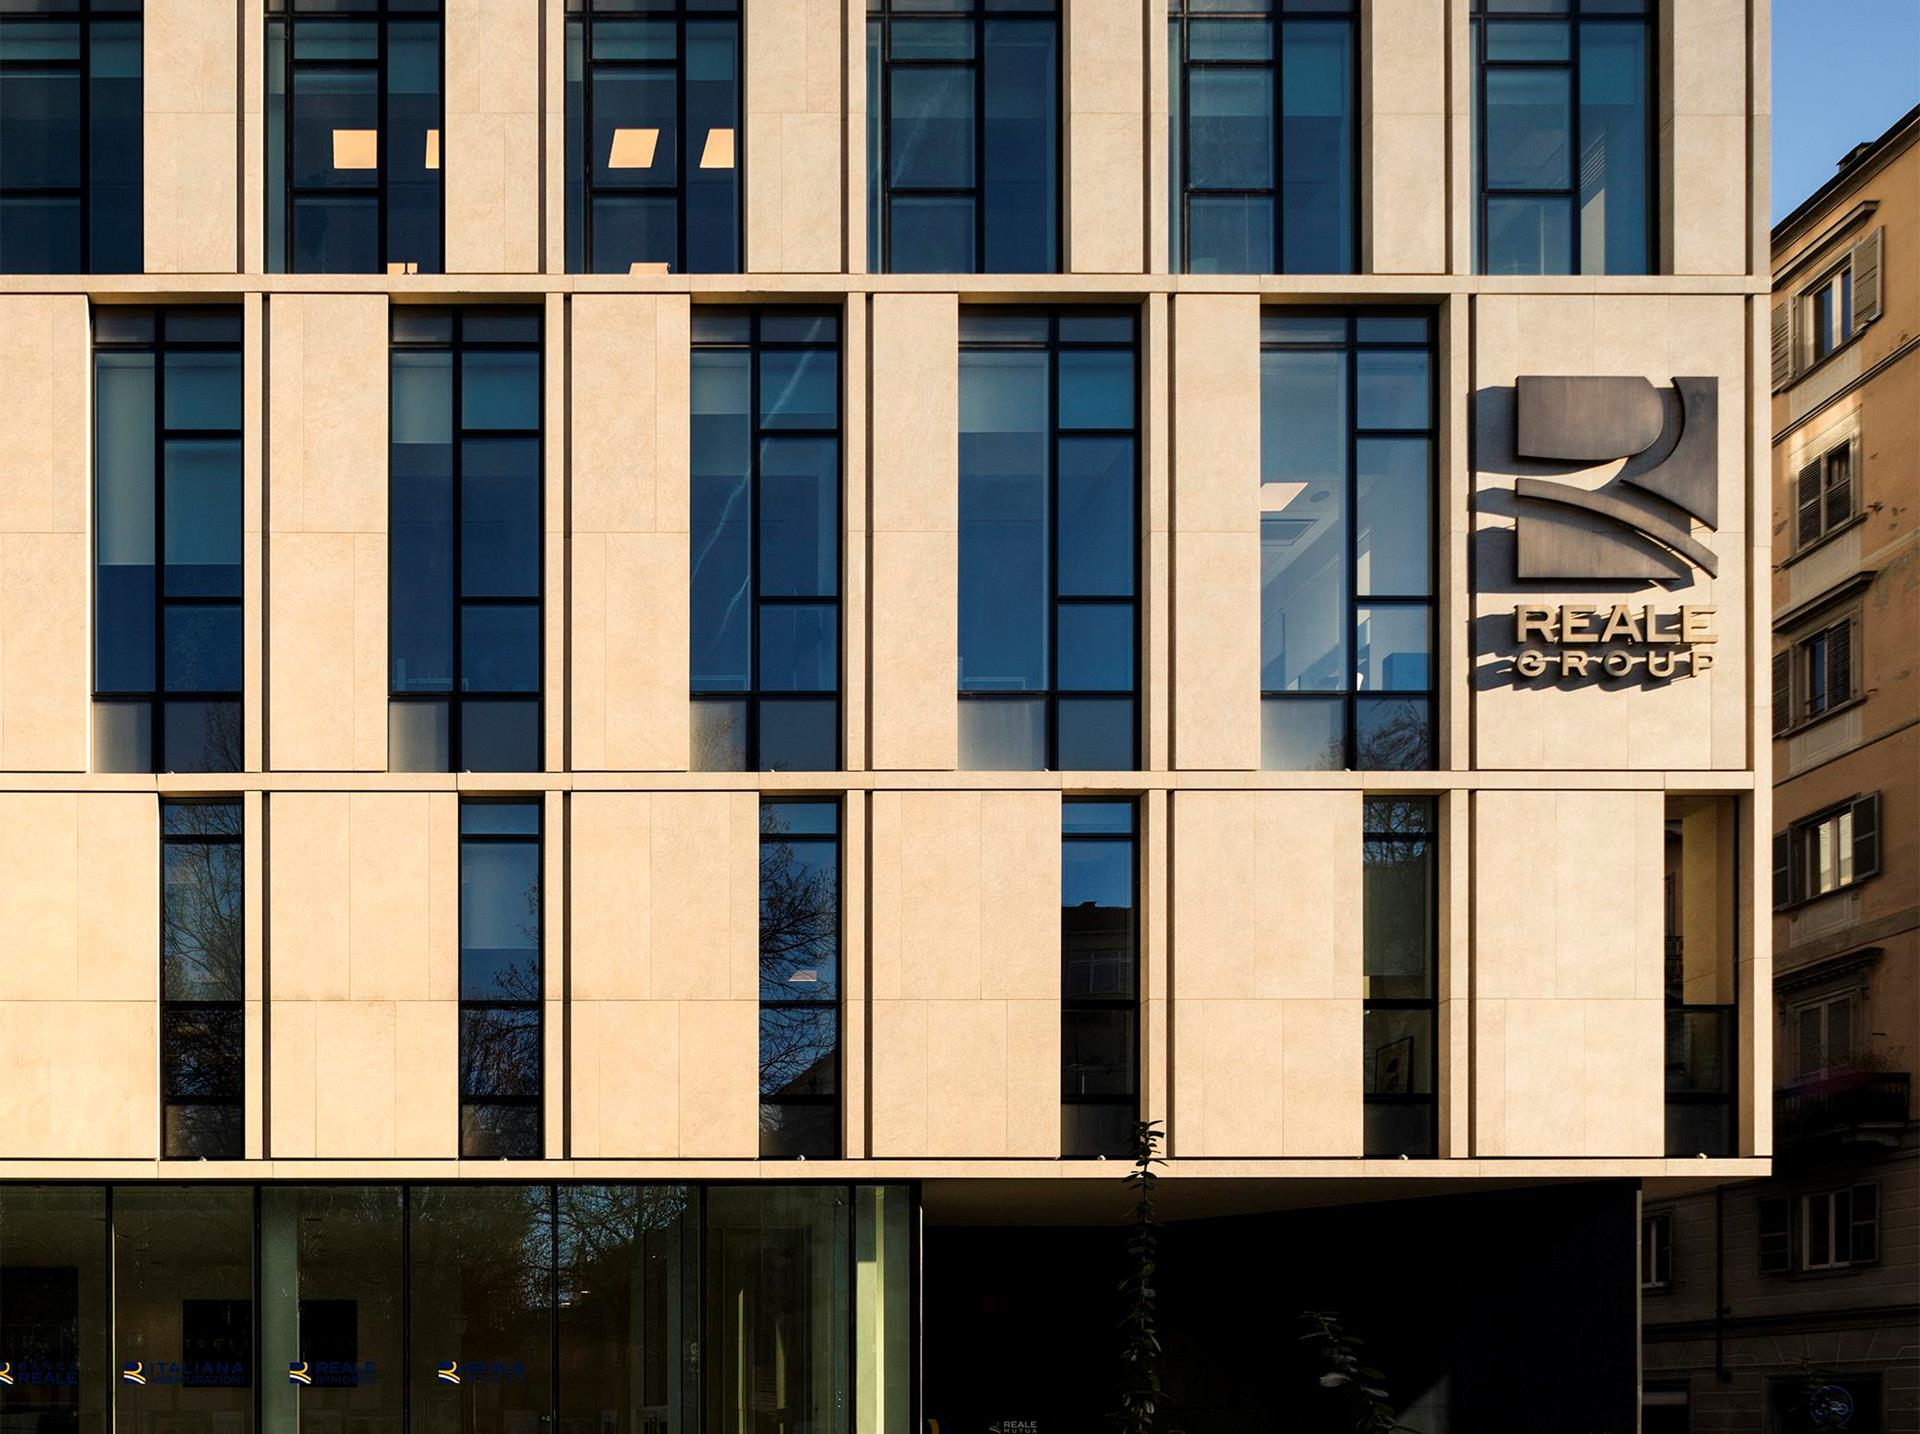 Reale Group Headquarters: Photo 1